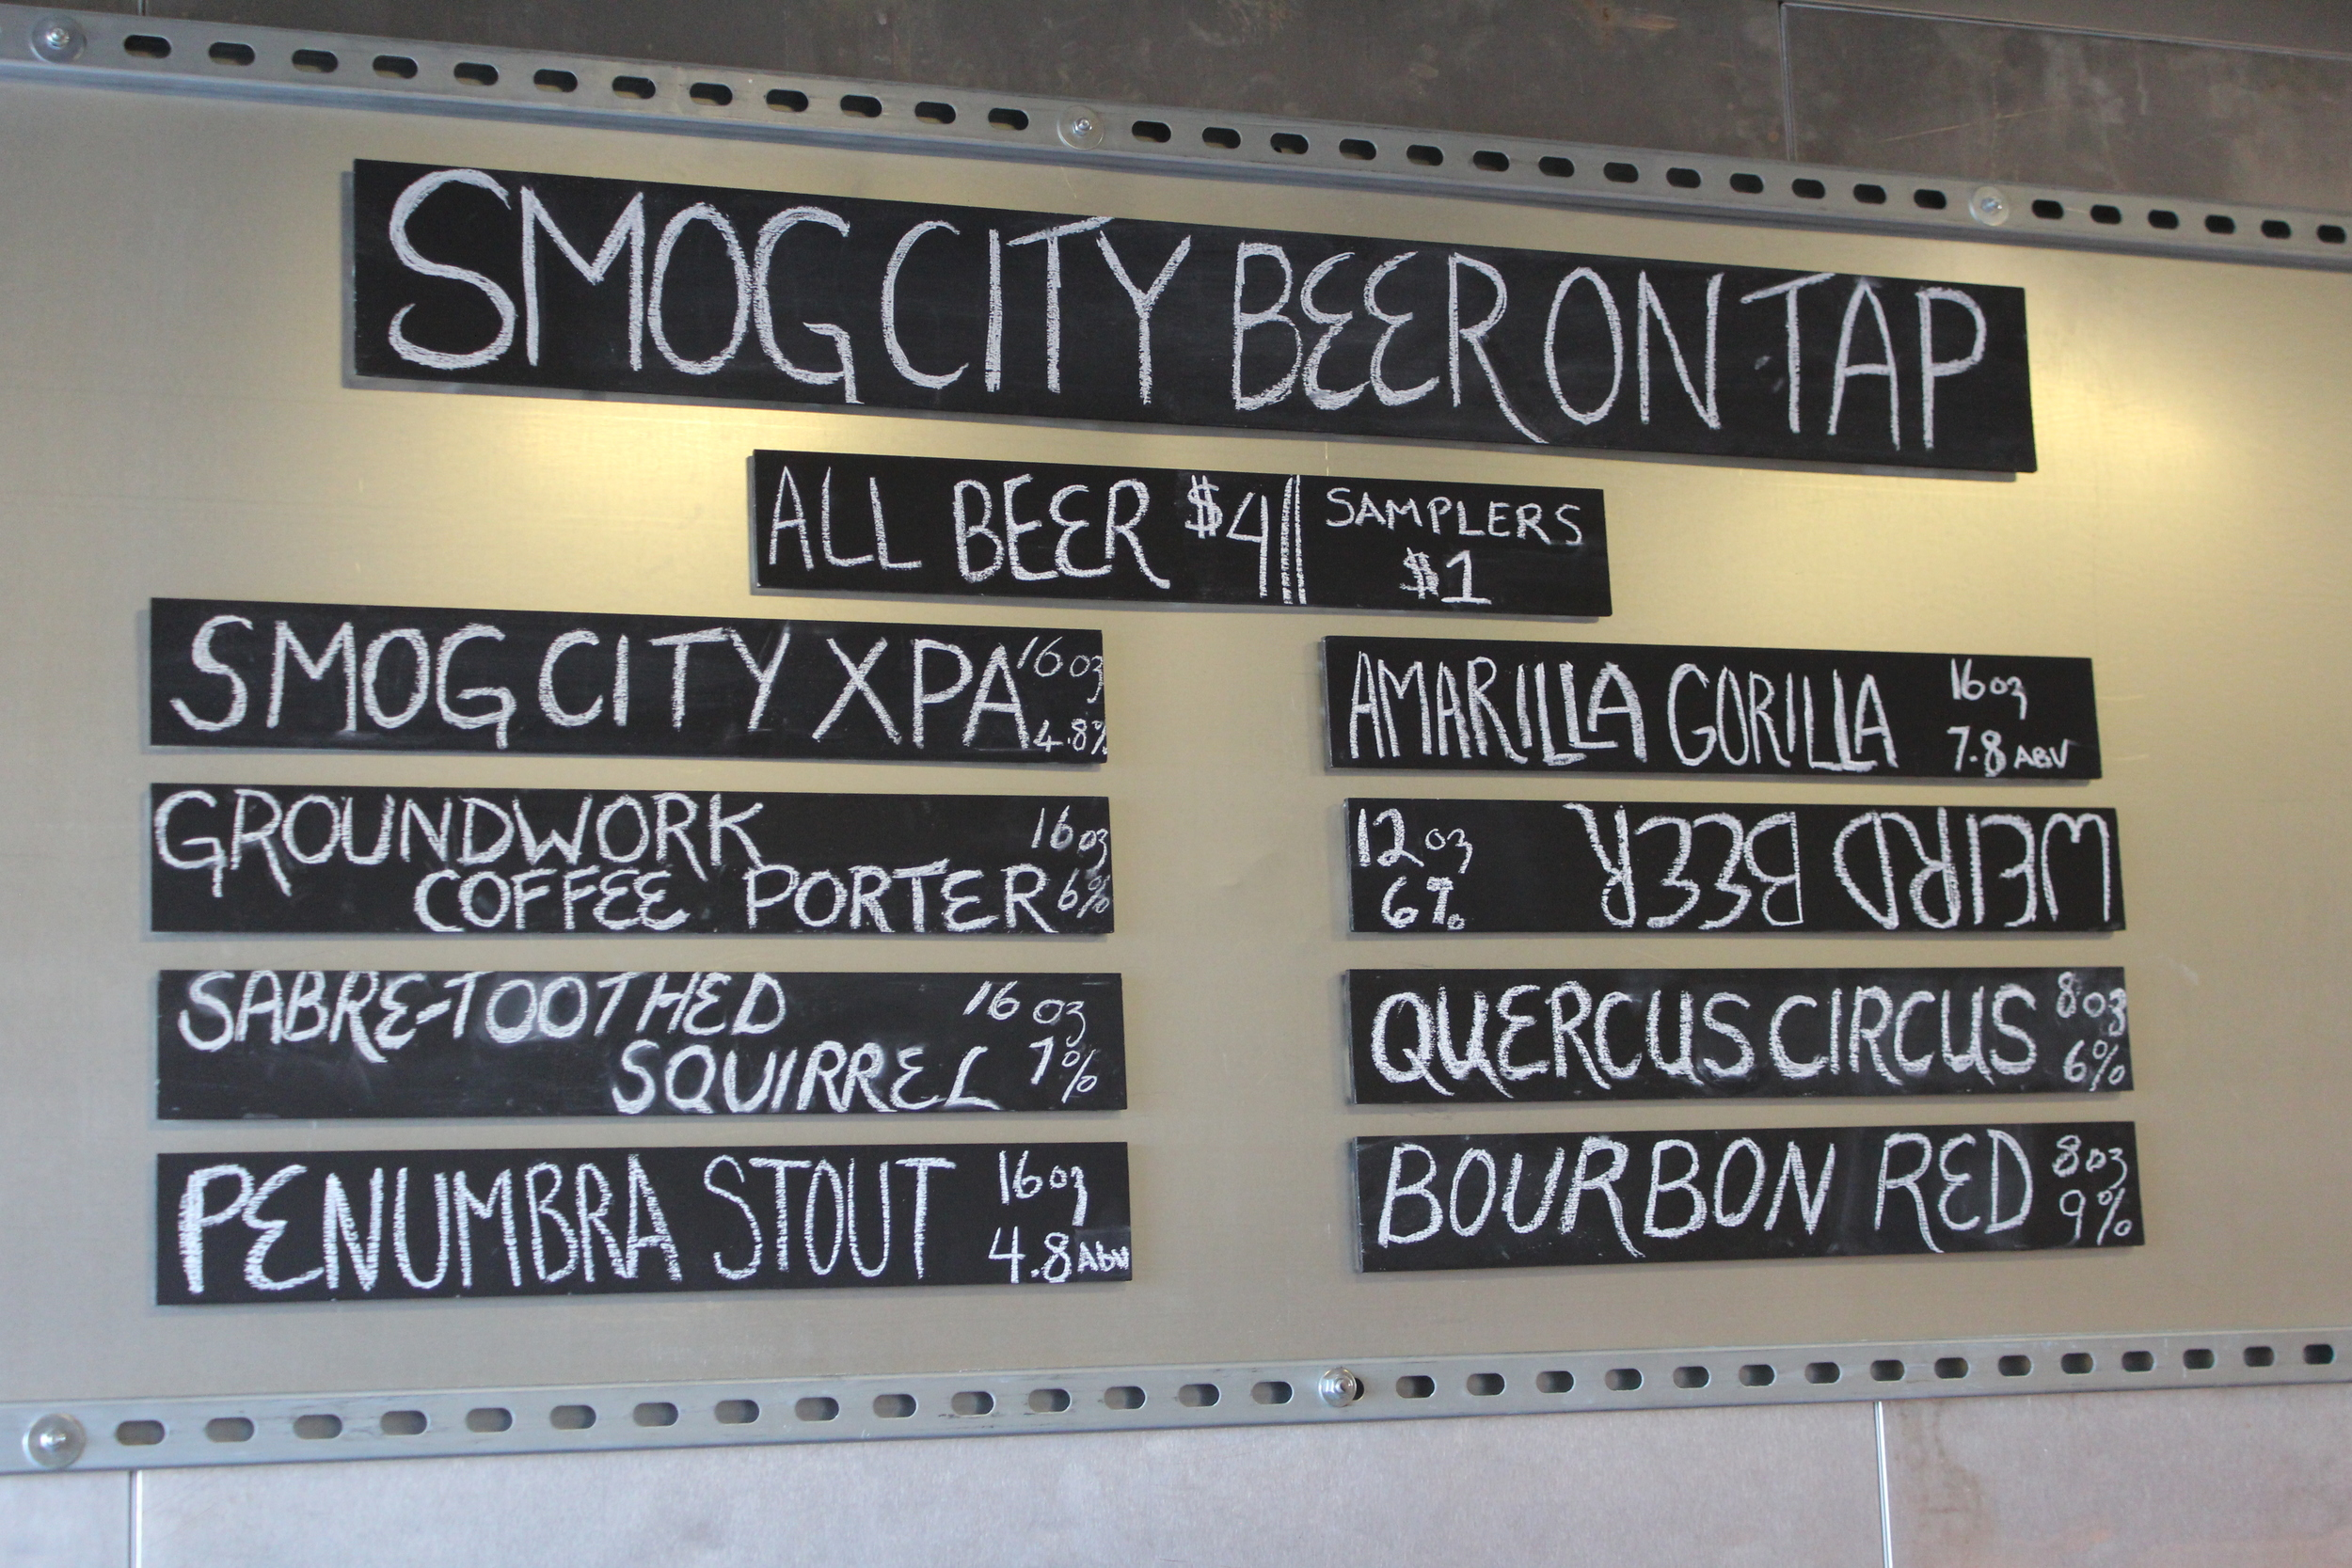 Smog City Beer On Tap